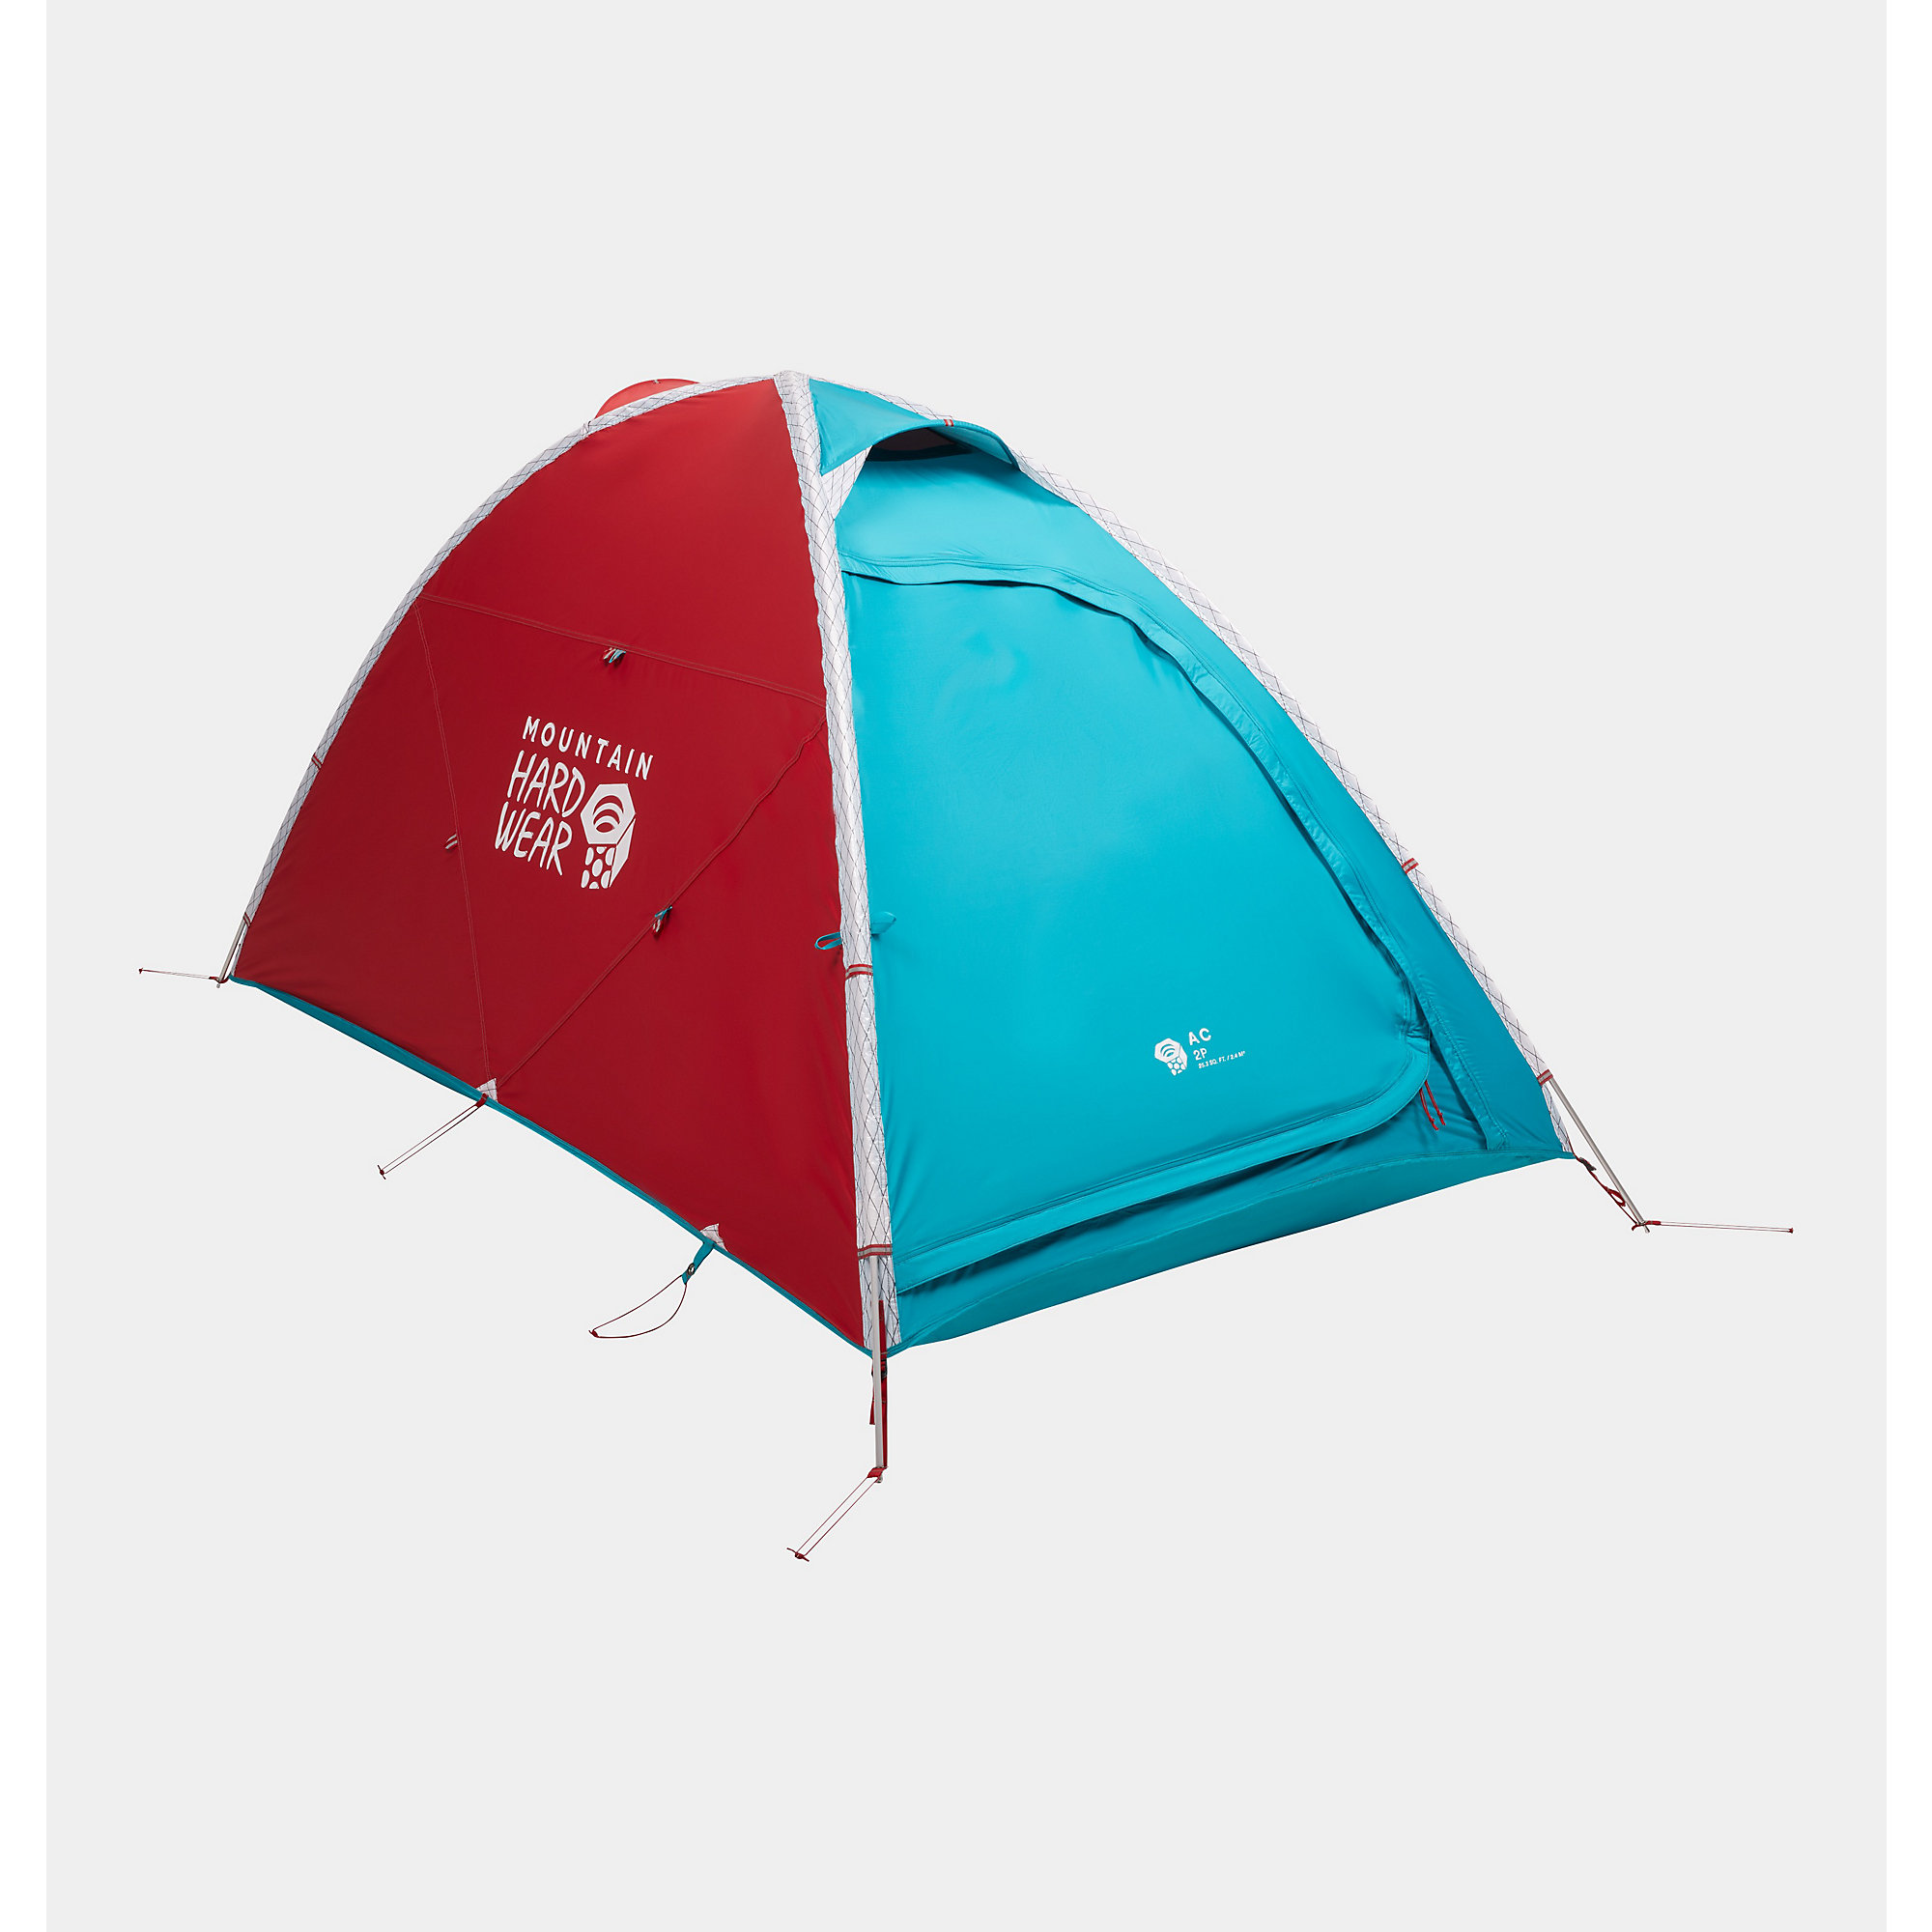 Mountain Hardwear AC 2 Tent